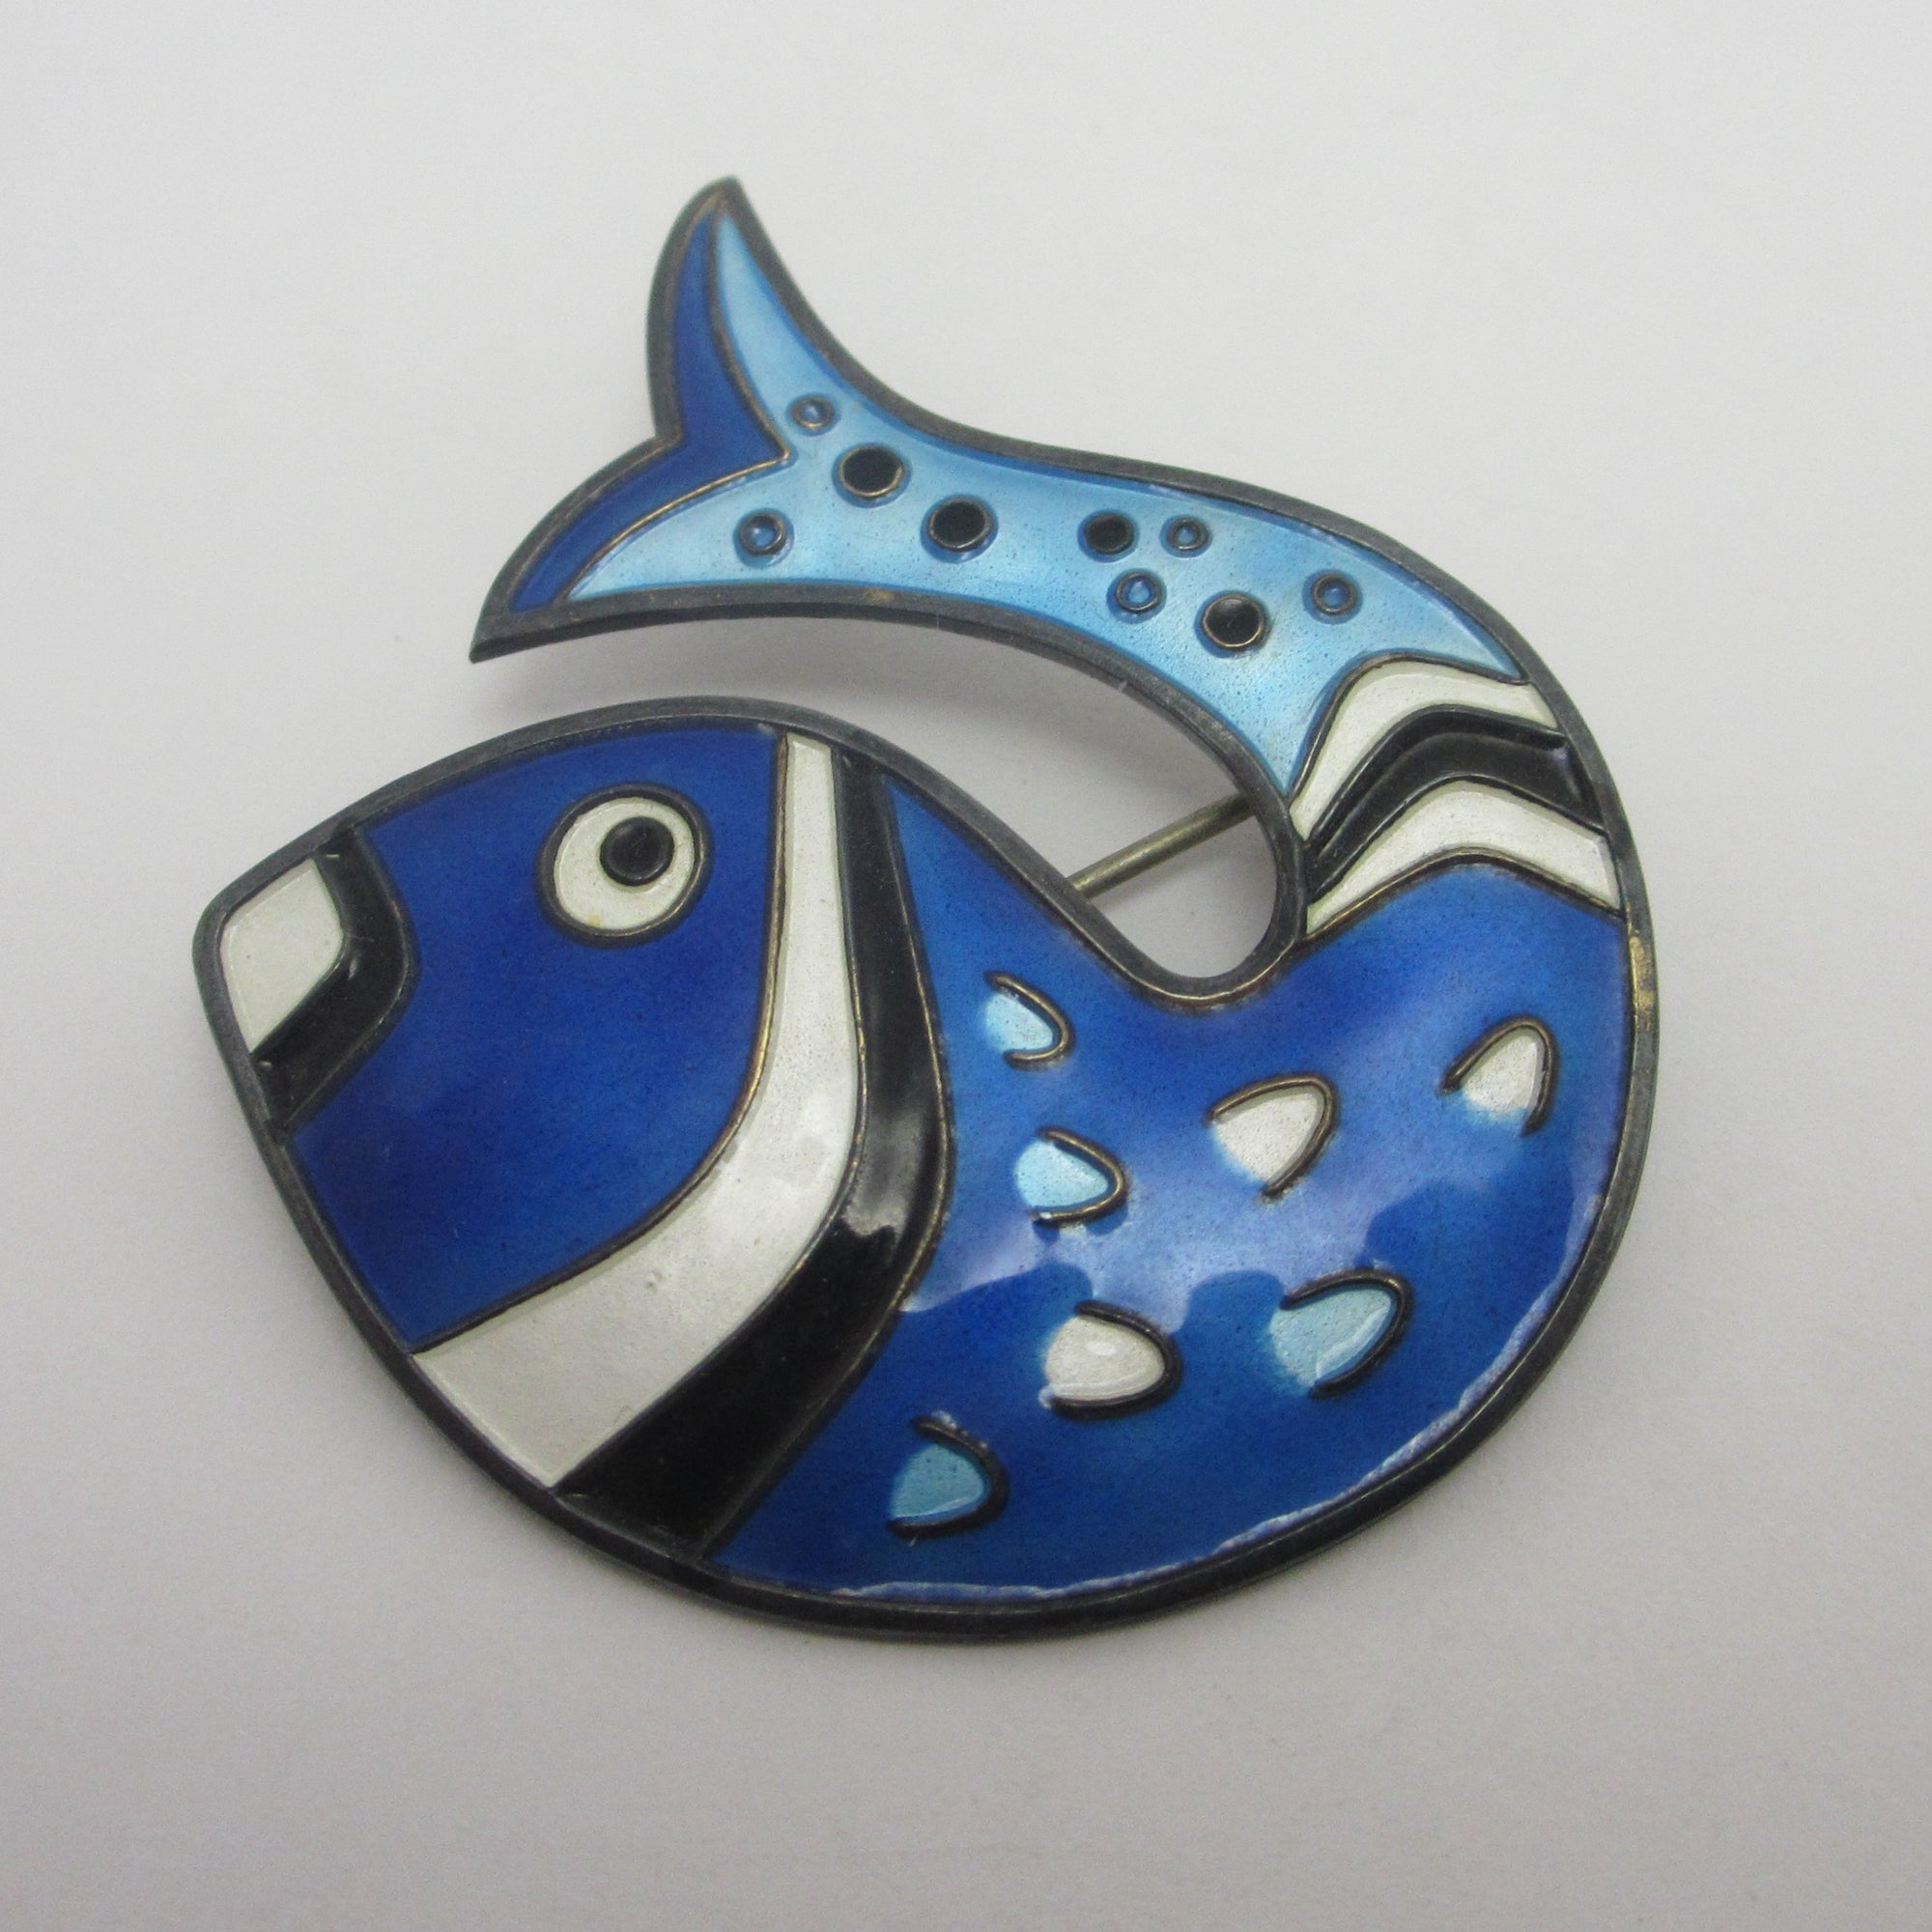 Norwegian Enamel Whale or Fish Sterling Silver Brooch Pin by David Andersen Vintage c1950